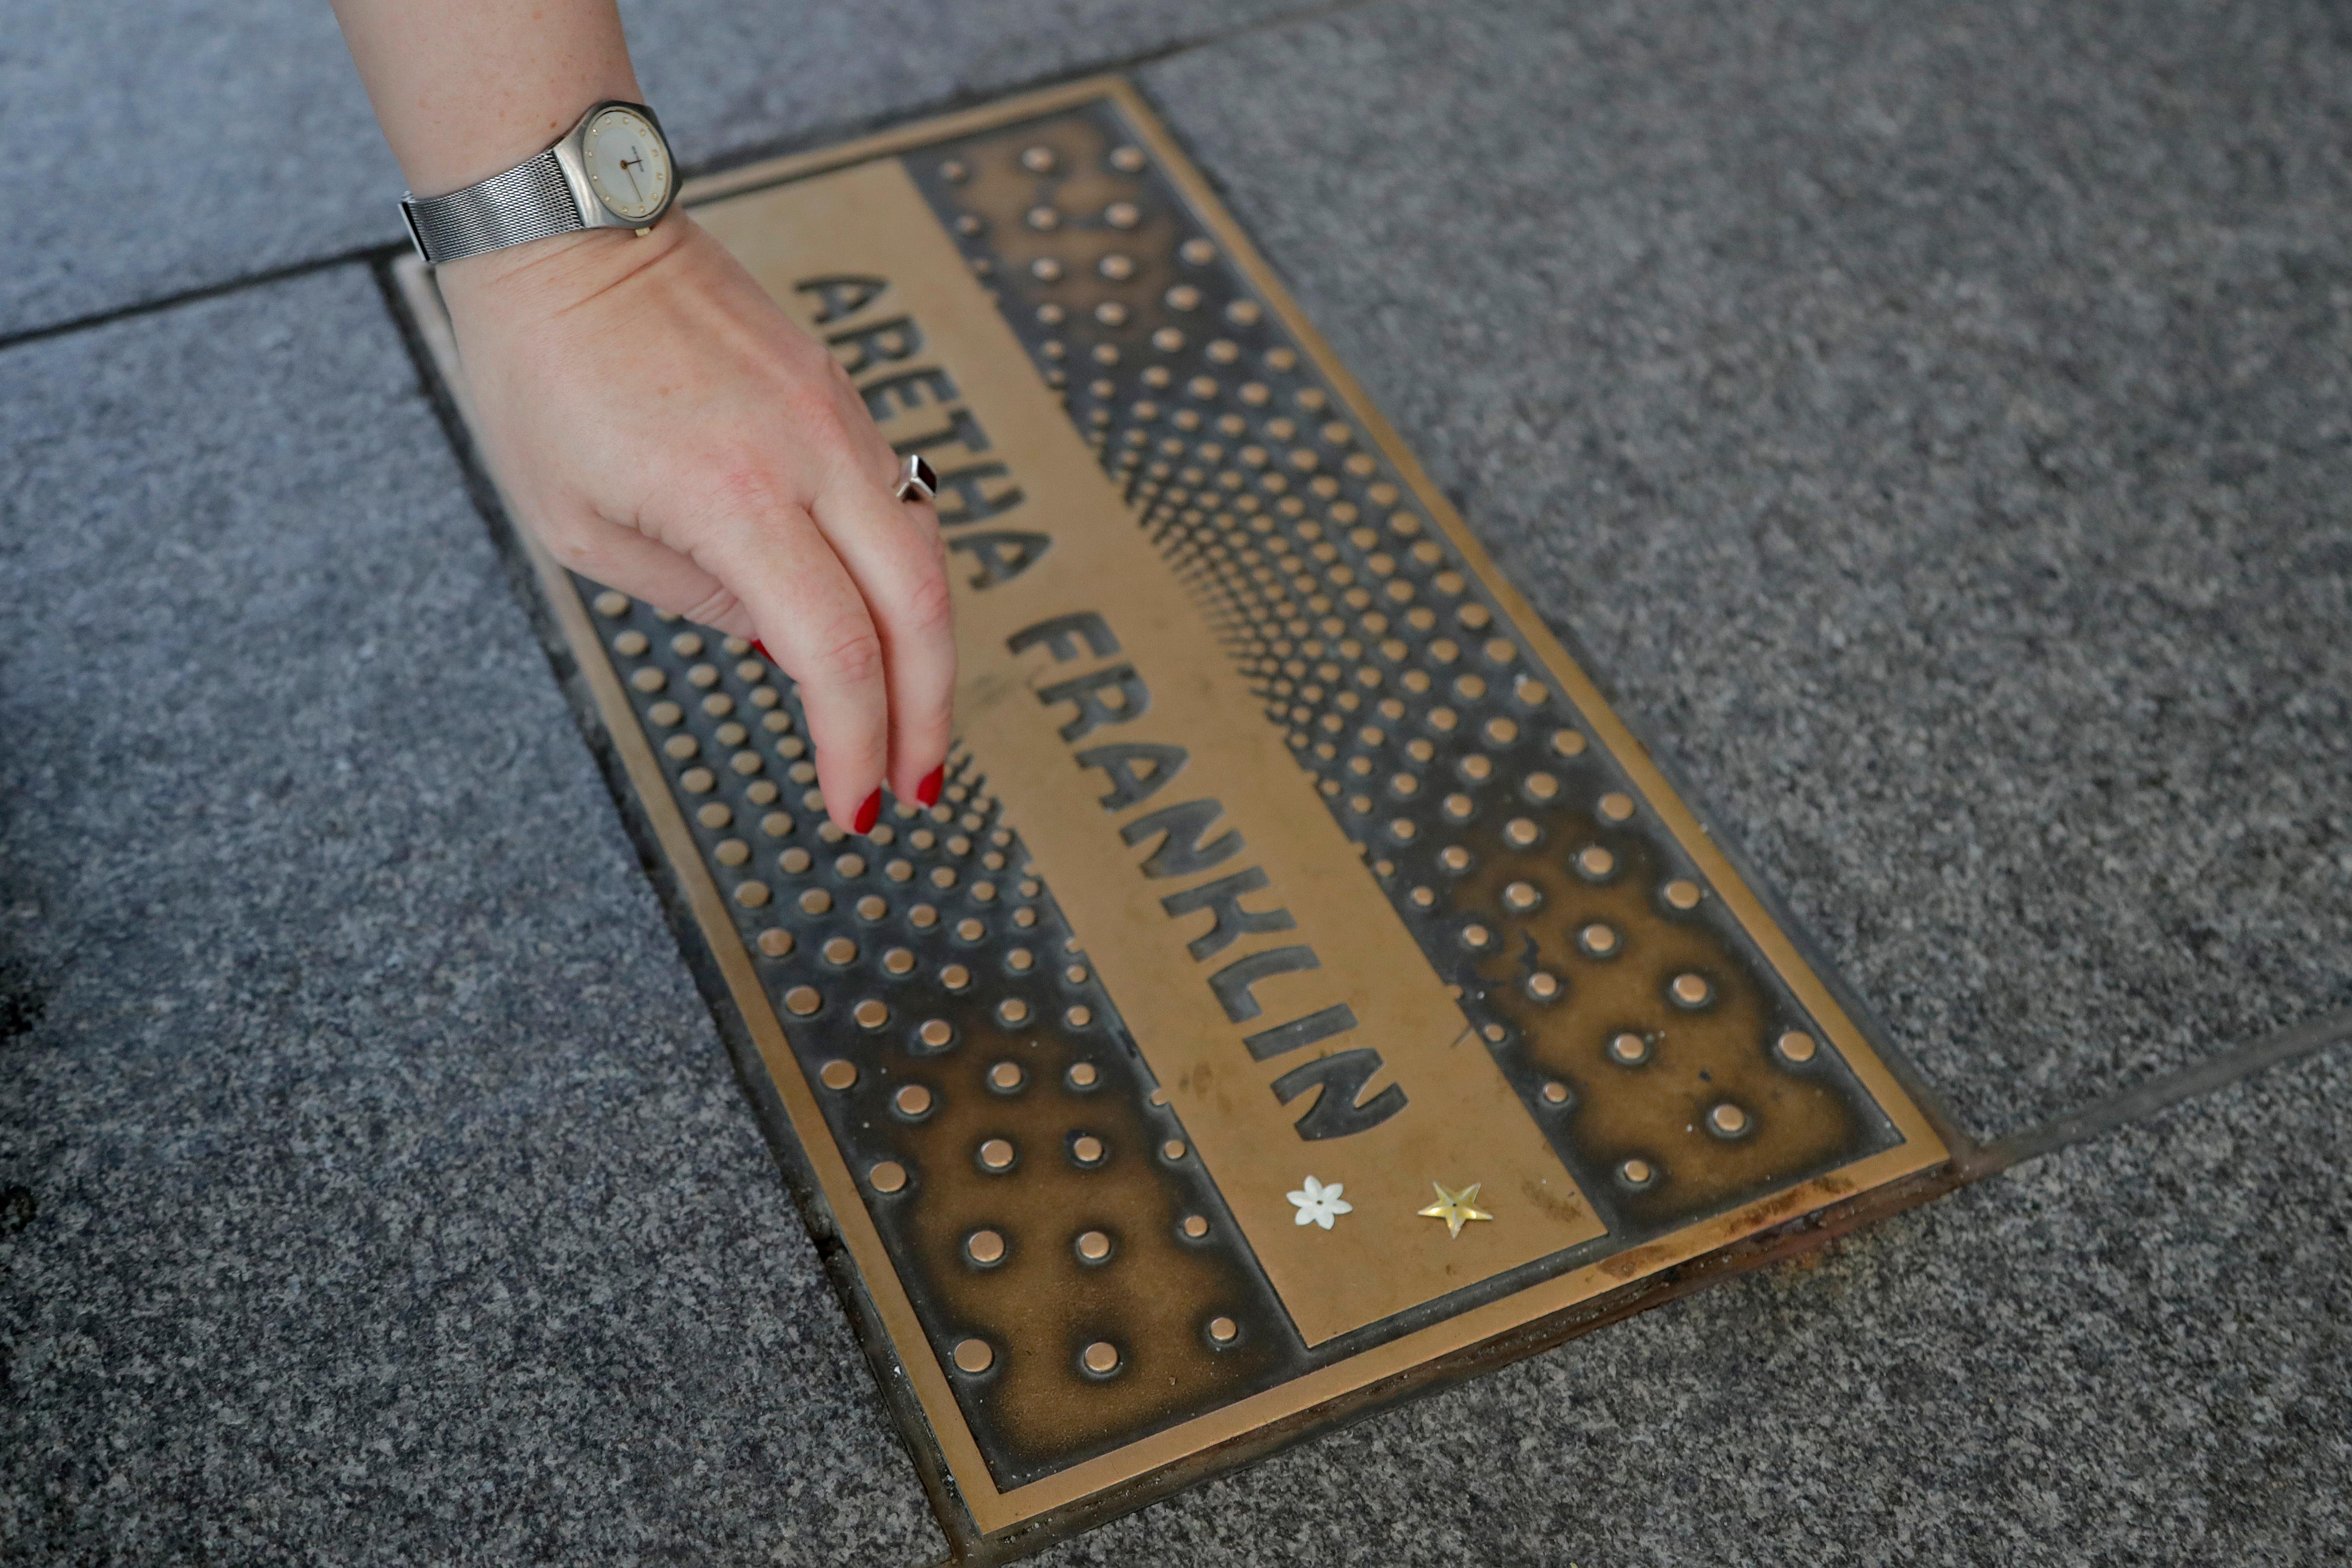 Agnieszka Mroczek, a tourist from Warsaw, Poland, pulls her hand away after placing stars on the nameplate for singer Aretha Franklin outside the Apollo Theater, Thursday, Aug. 16, 2018, in the Harlem section of New York. Franklin died in her home in Detroit at age 76 from pancreatic cancer. (AP Photo/Julio Cortez)